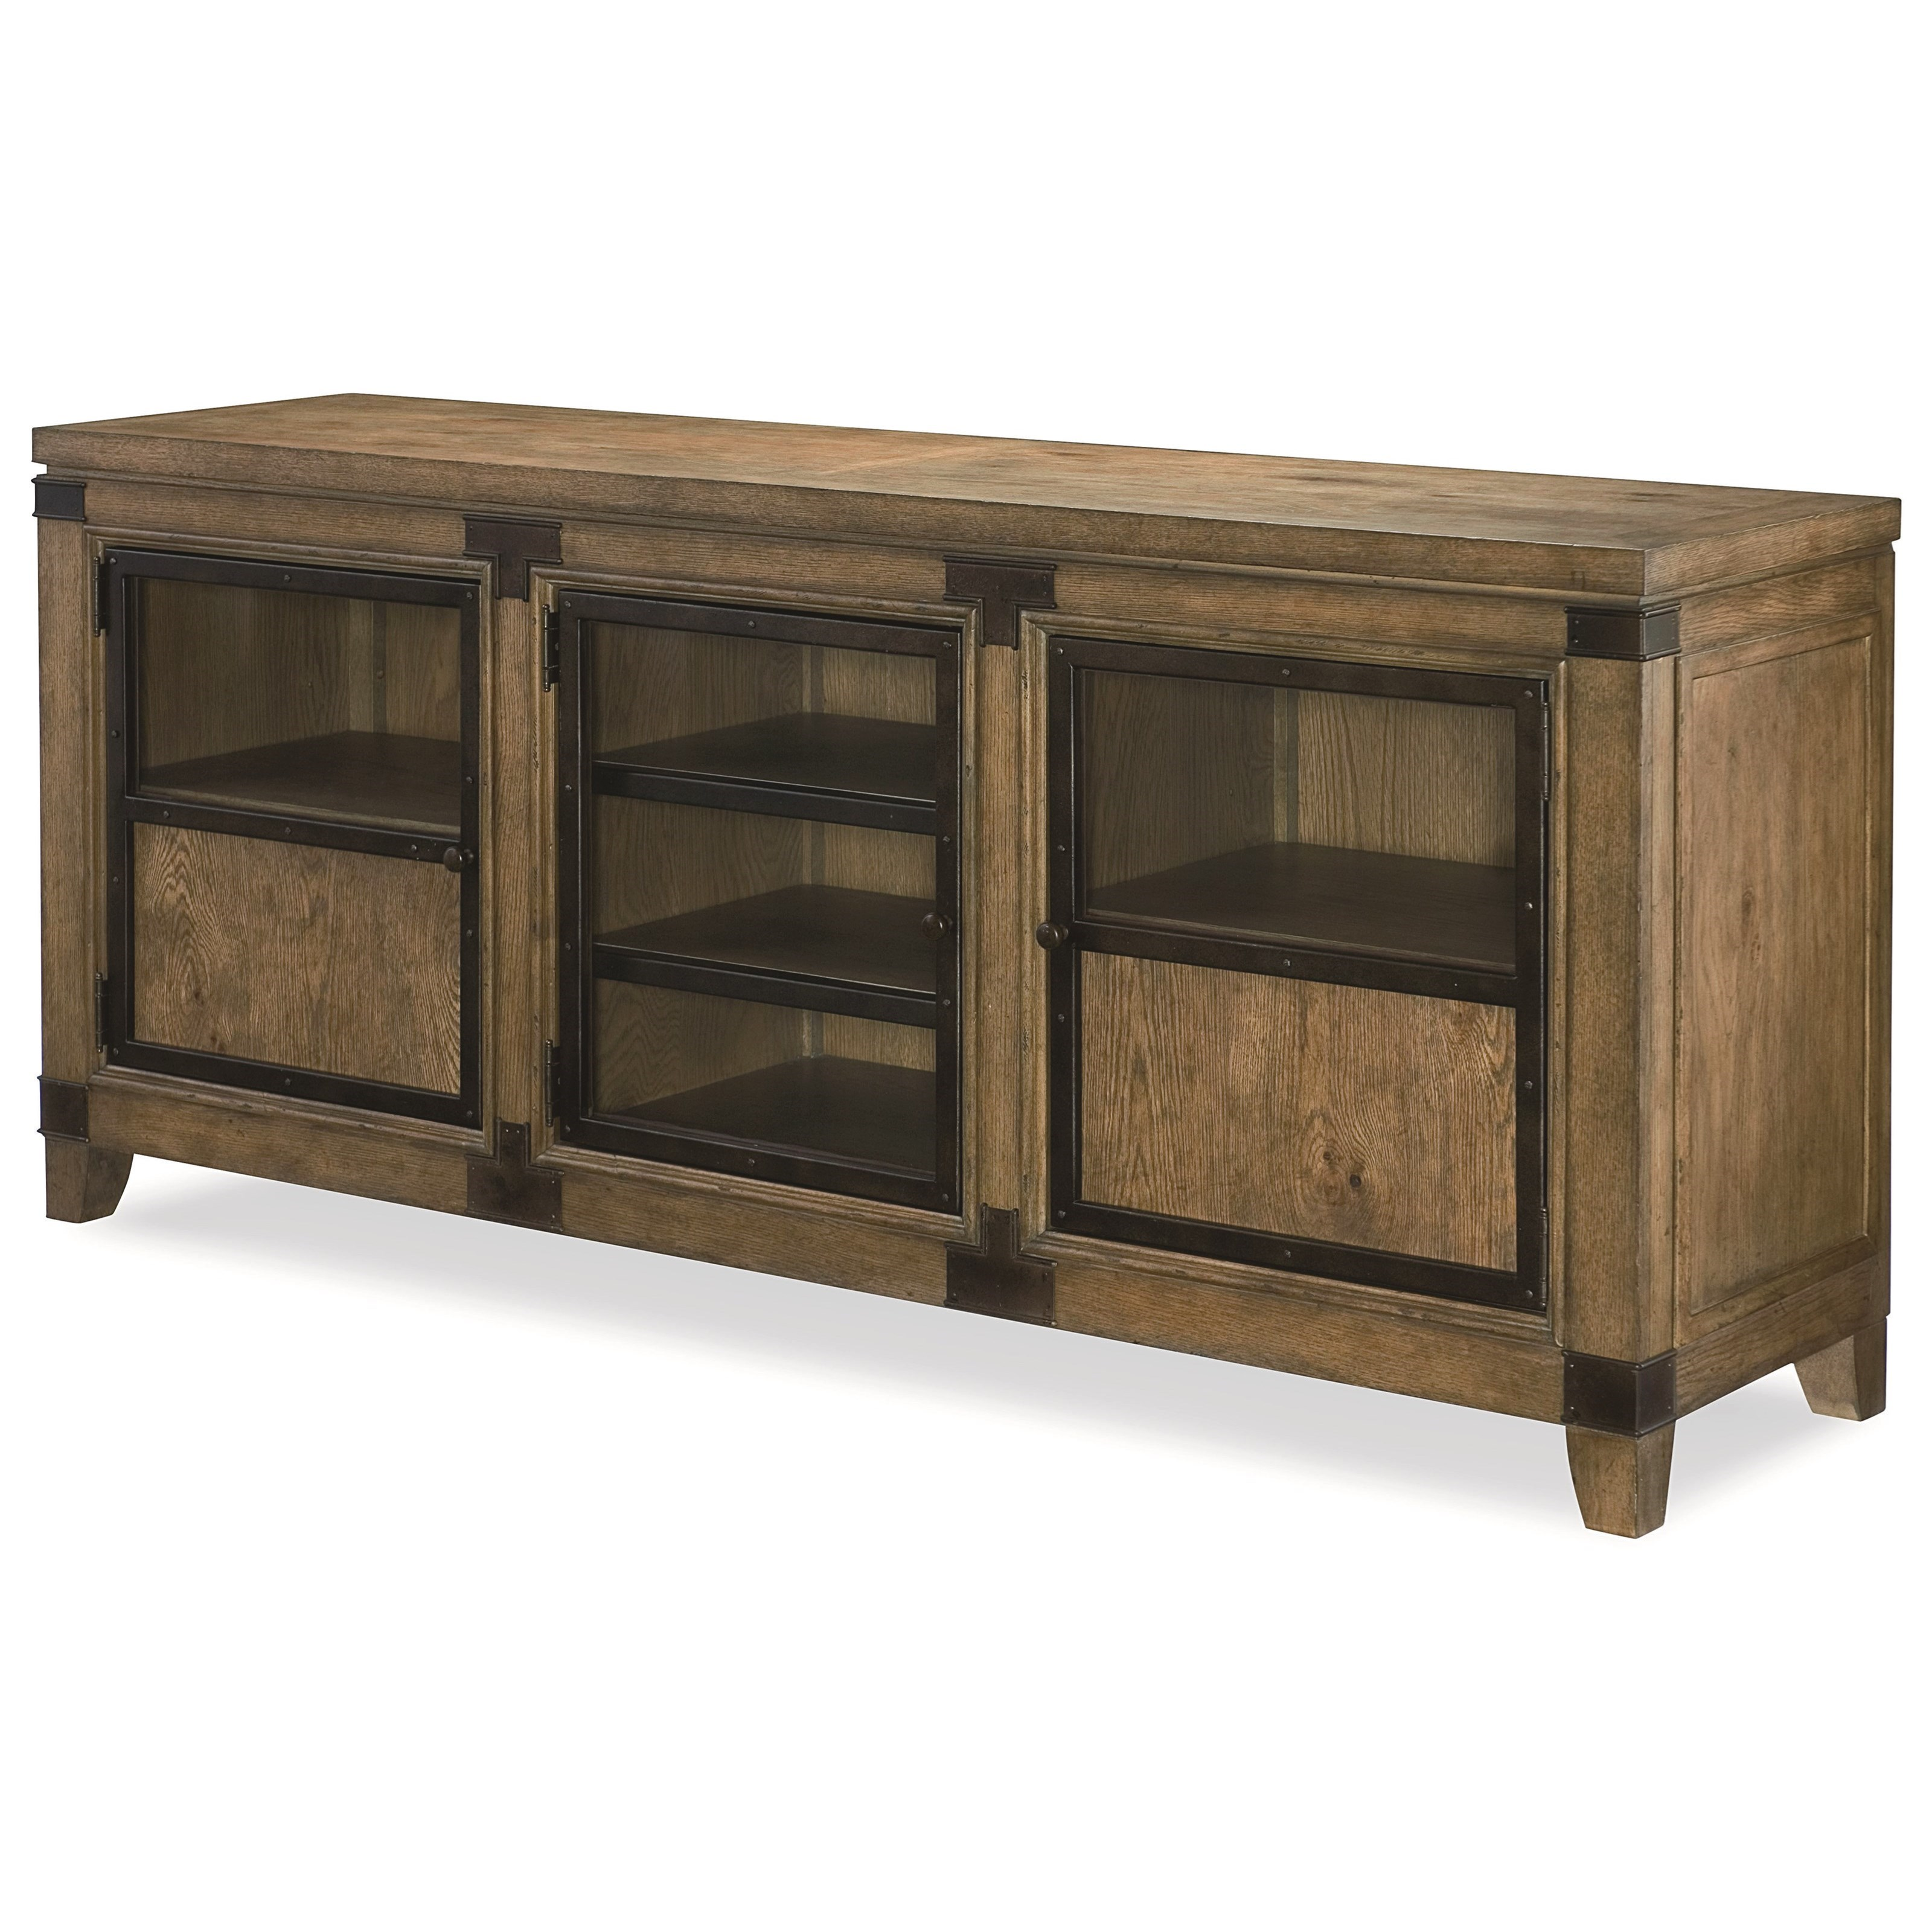 Legacy Classic Metalworks Entertainment Console  - Item Number: 5610-023